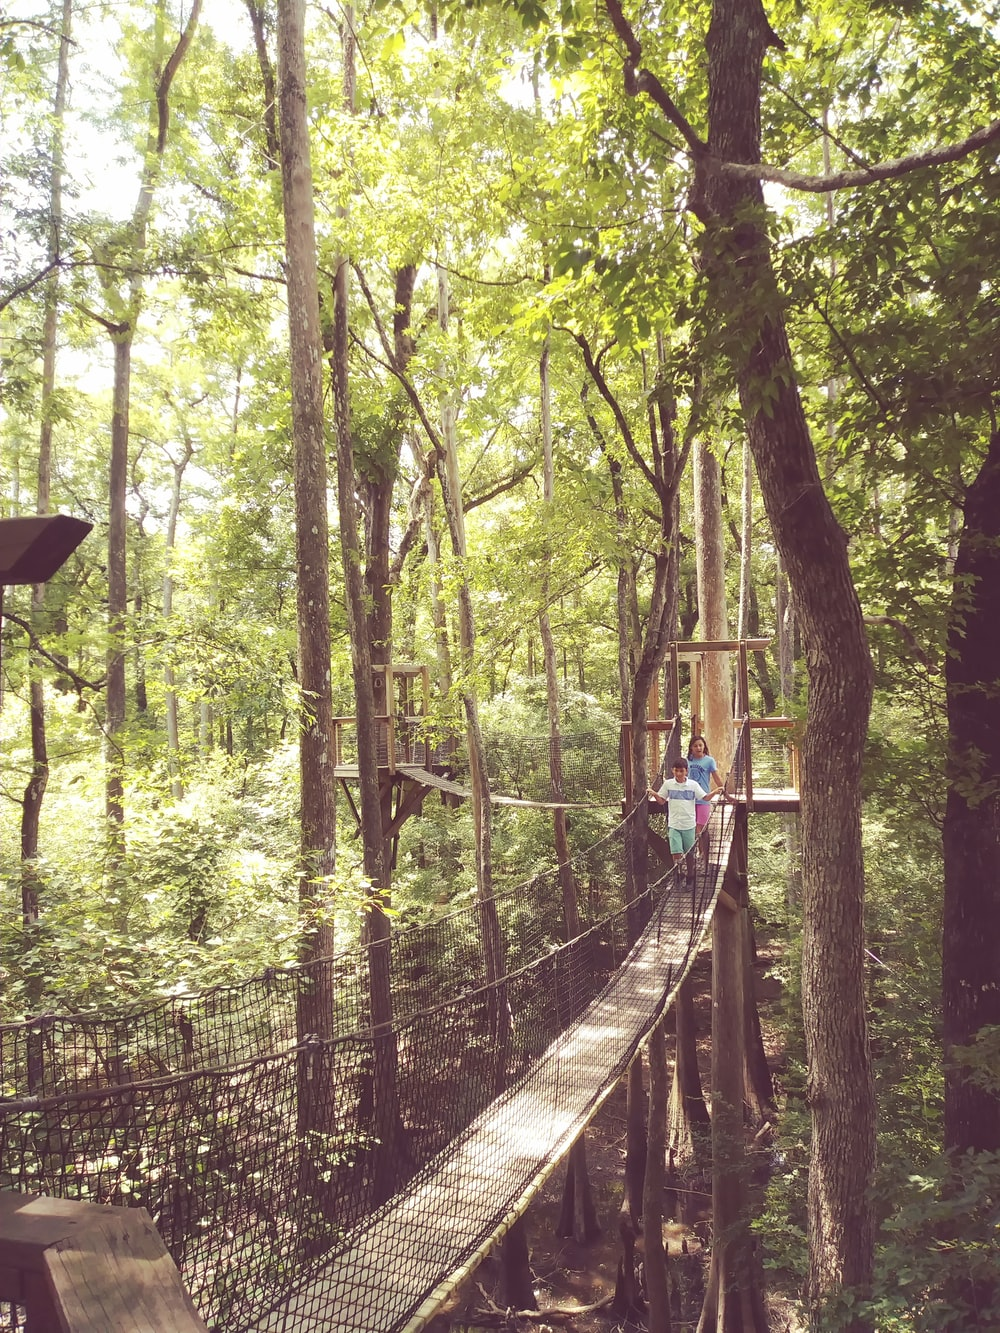 two person crossing on hanging bridge